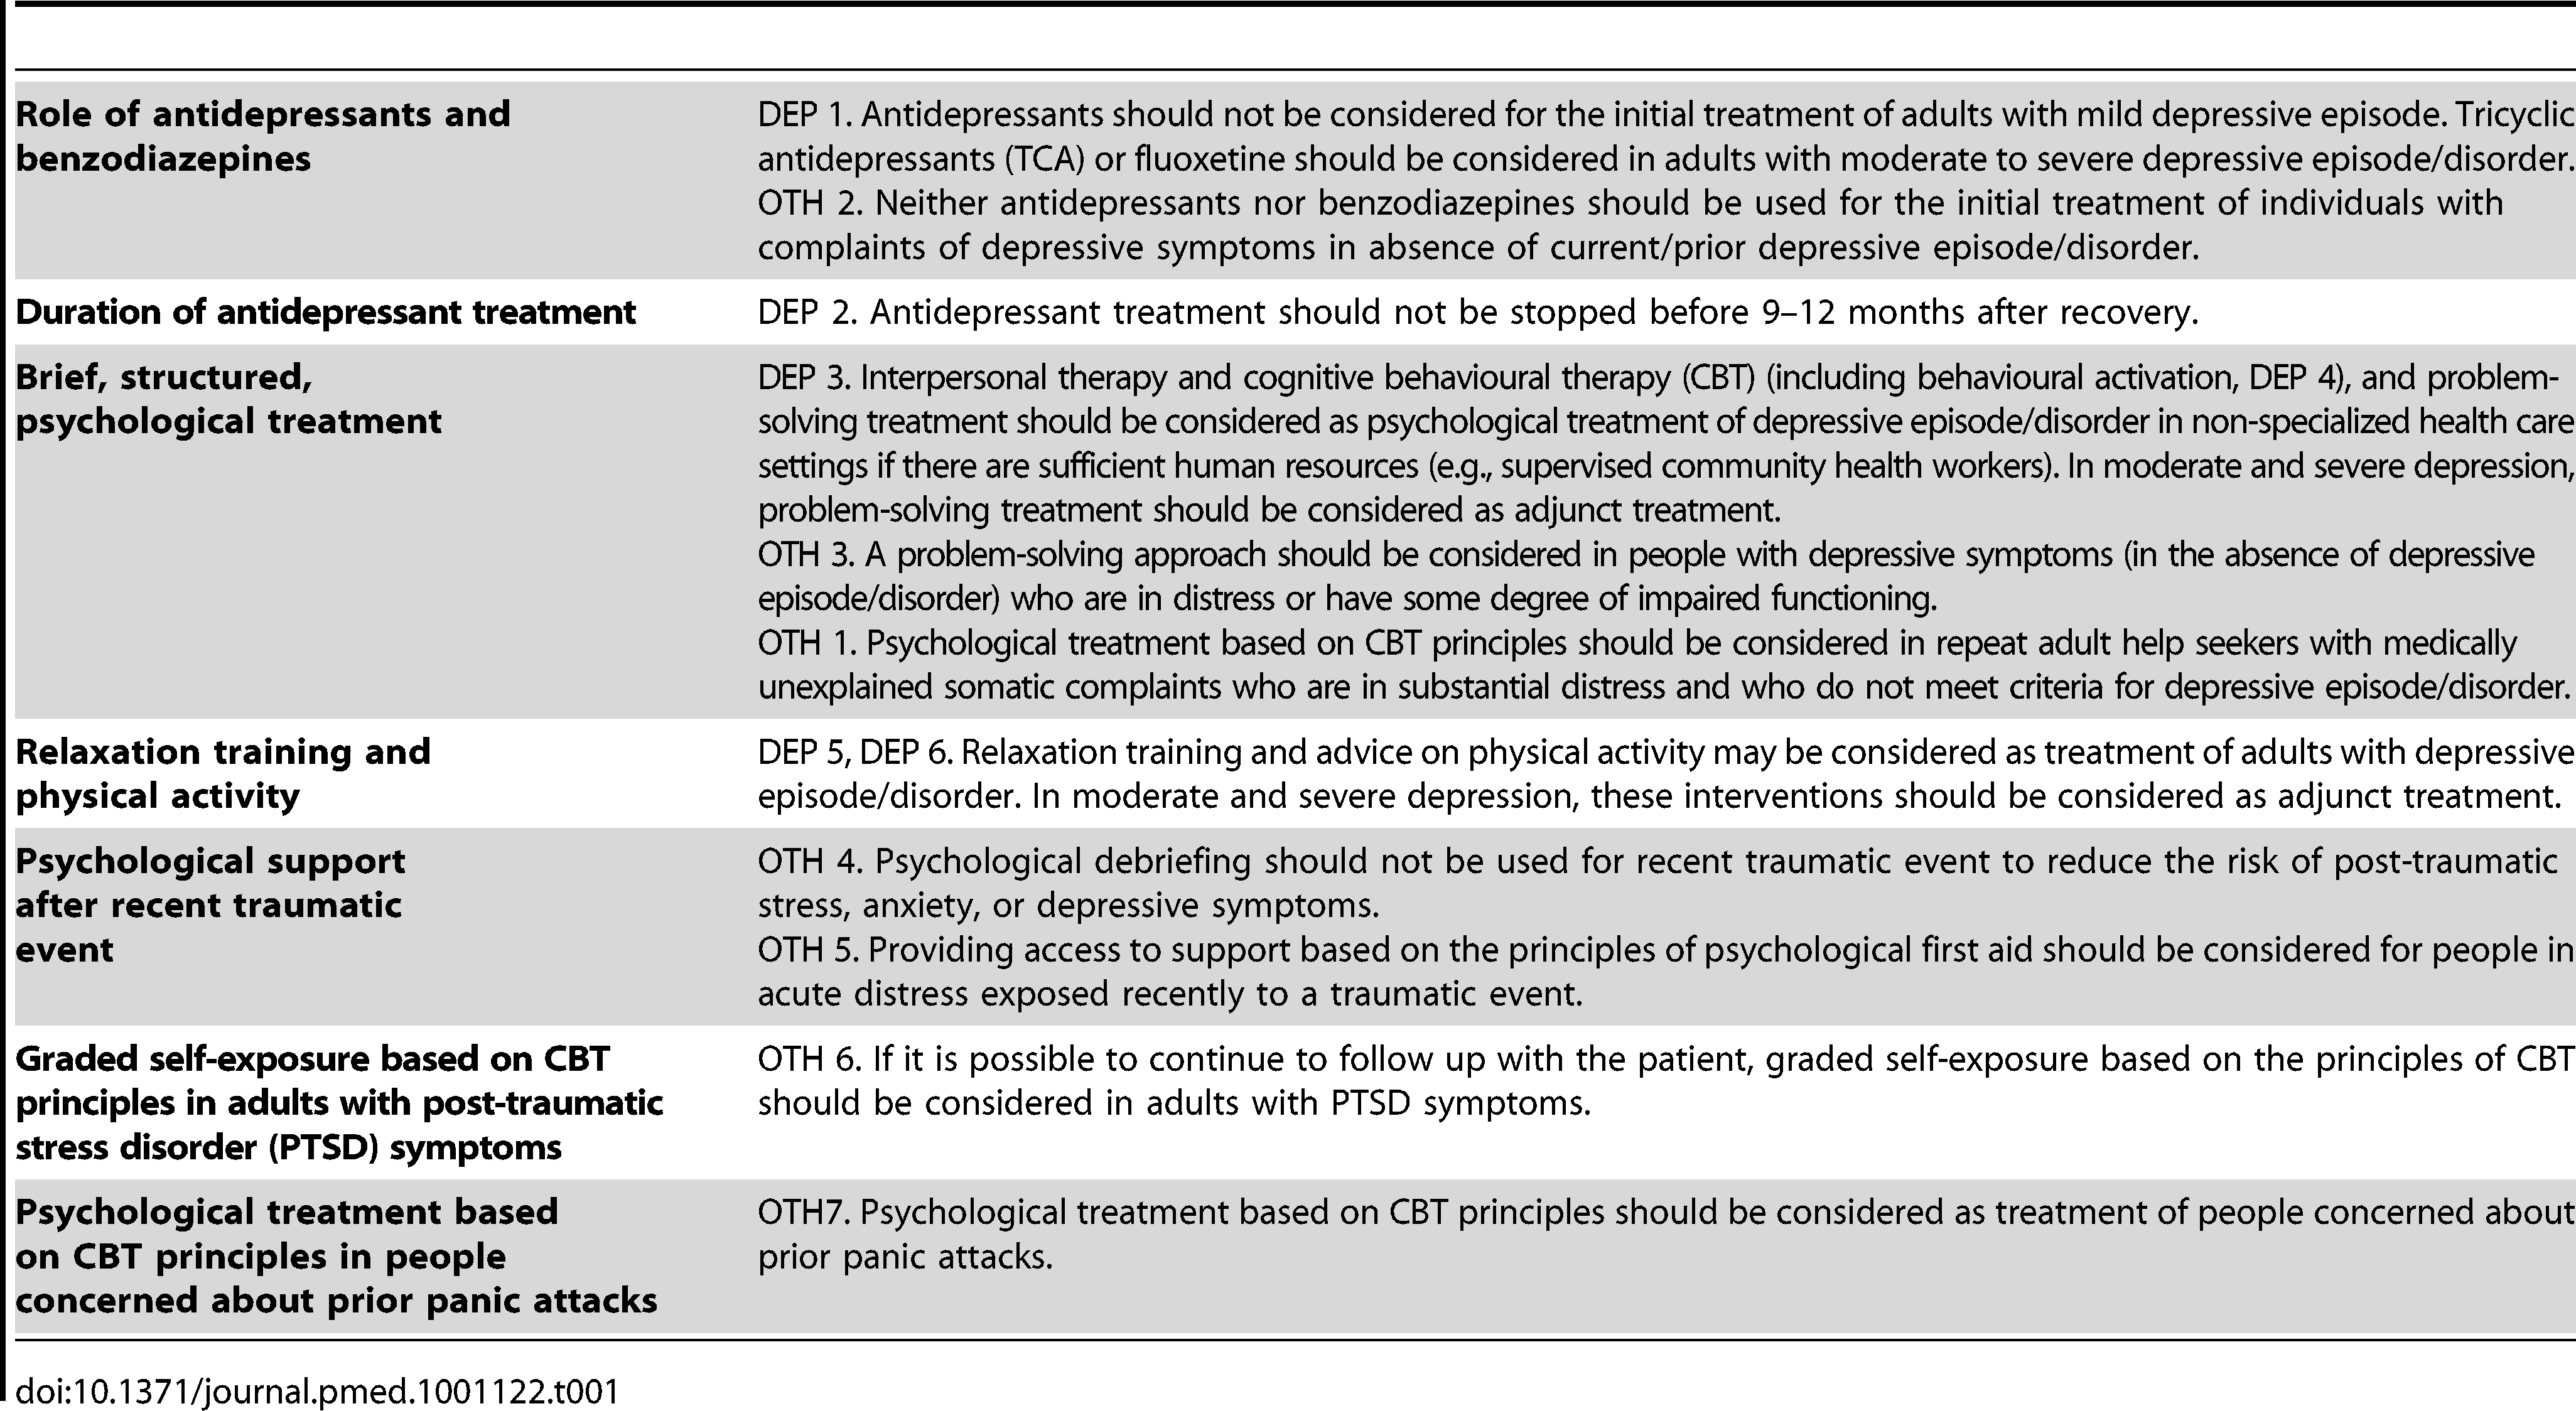 Abridged recommendations for depression (DEP 1–6) and other significant emotional or medically unexplained complaints (OTH 1–7).